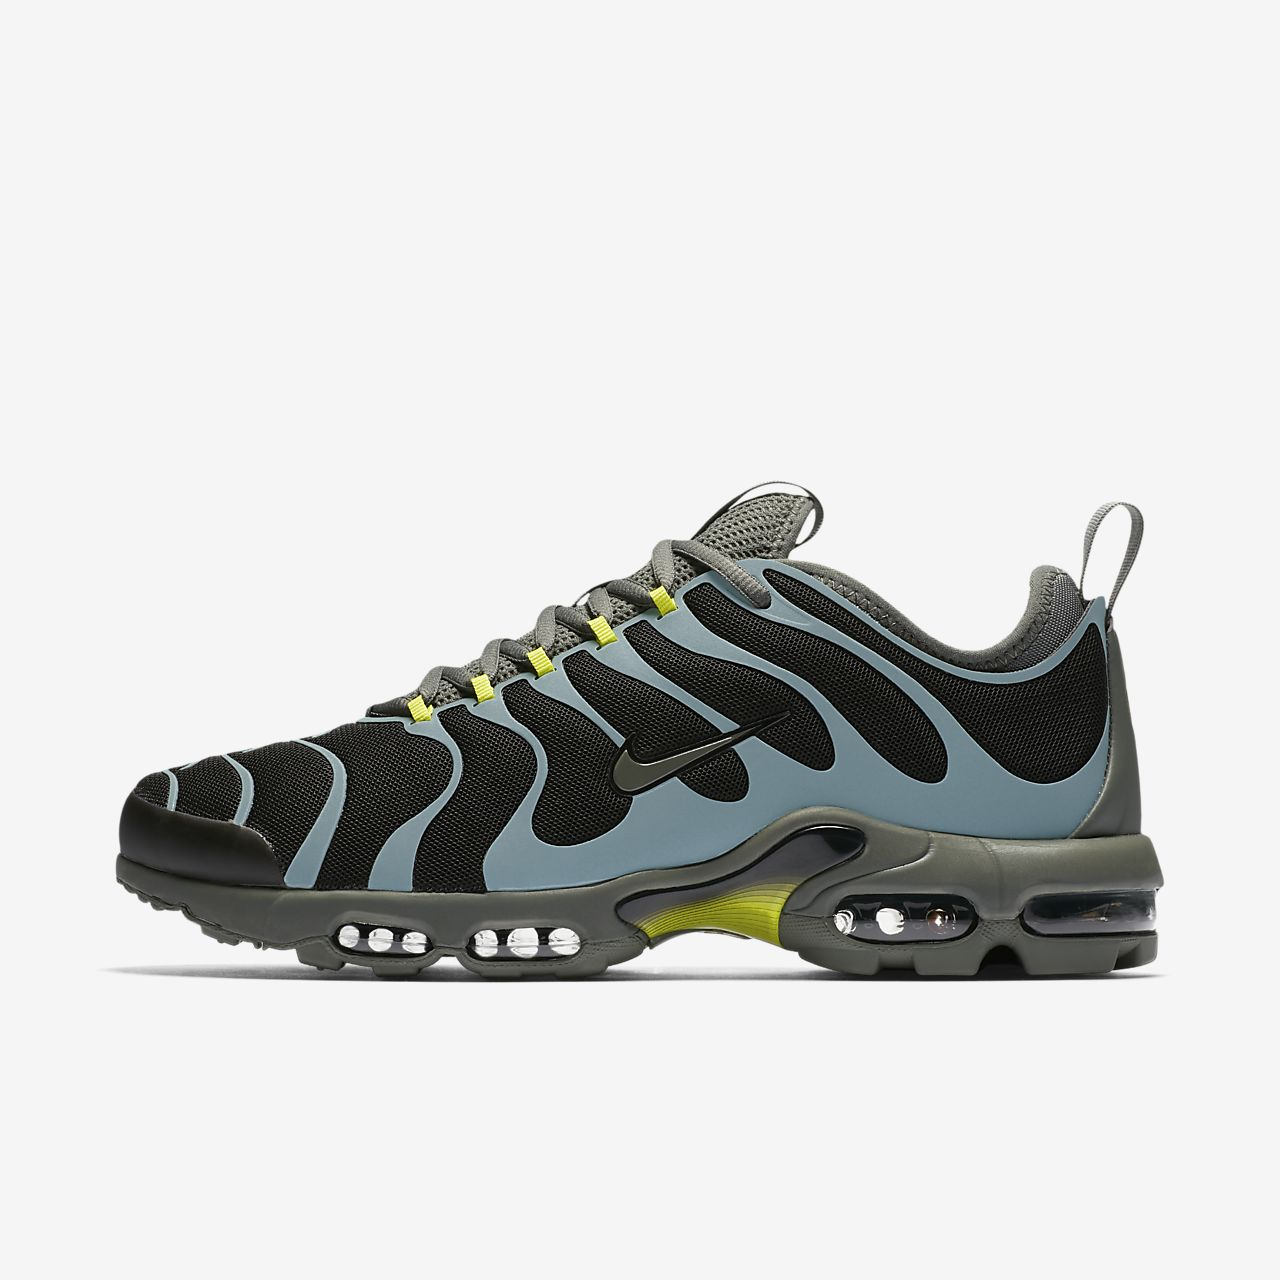 Nike Air Max Plus Tn 350